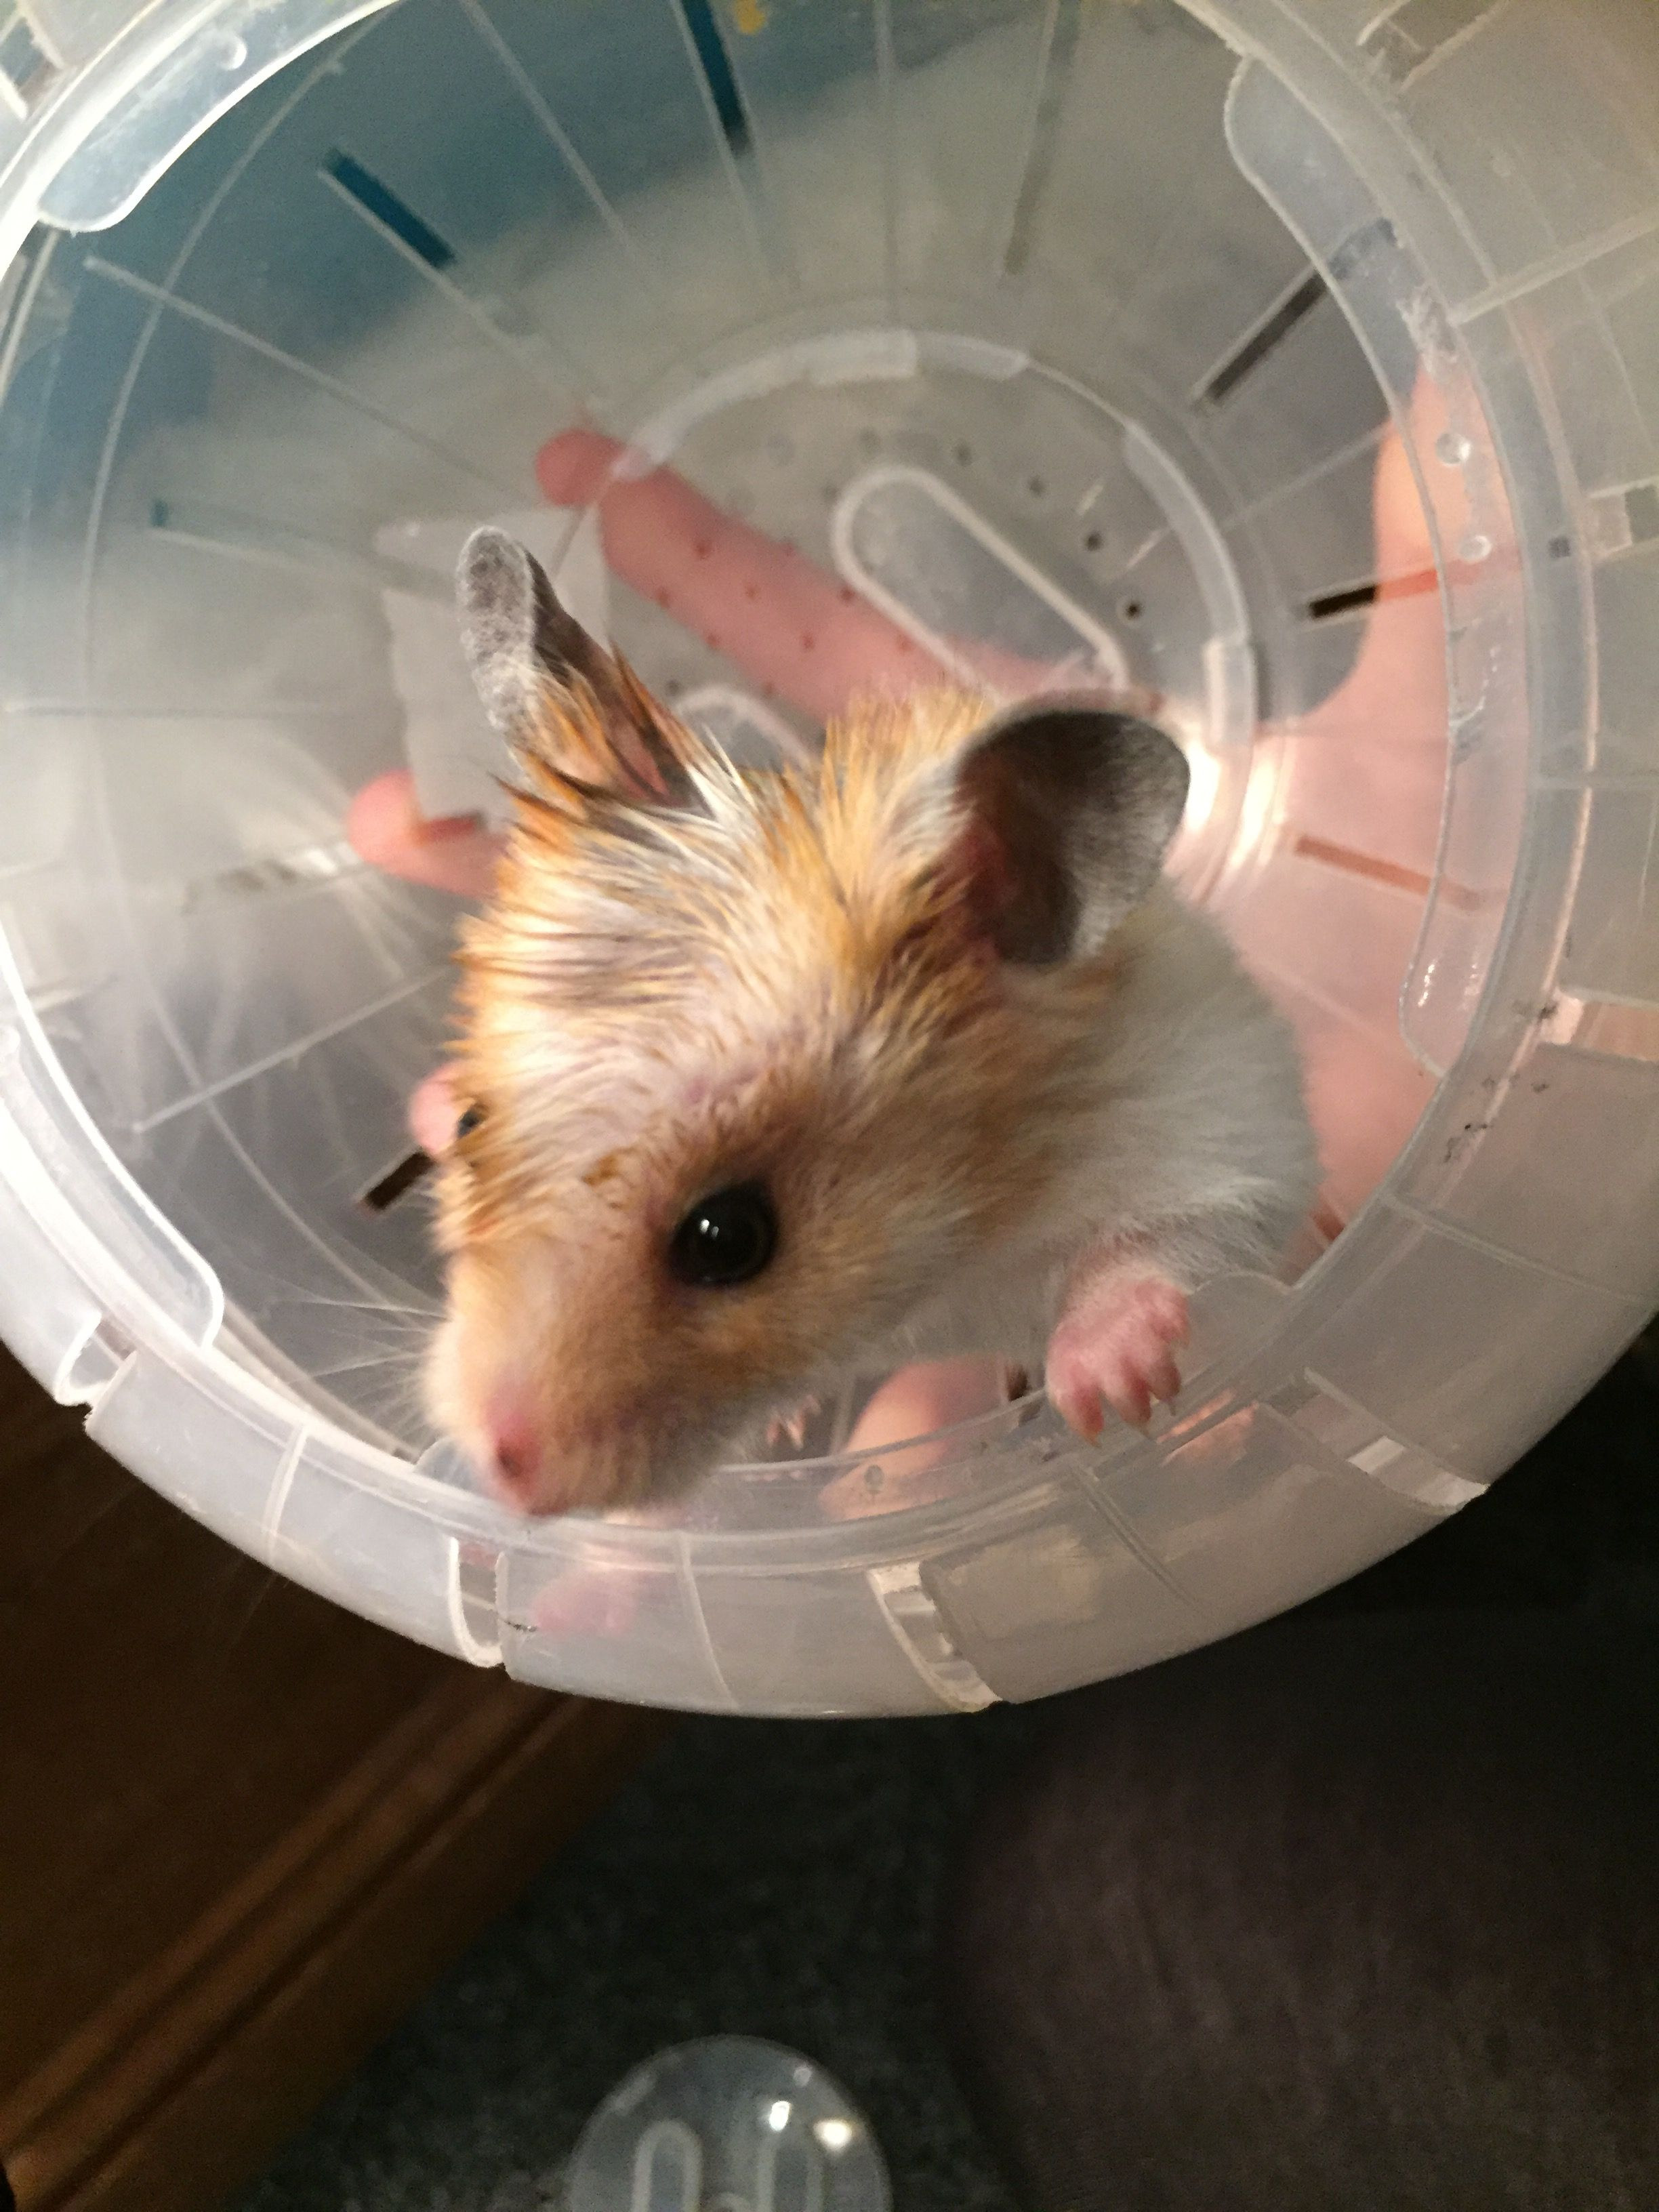 Olive oil Mohican Rhino the Hamster Fur babies